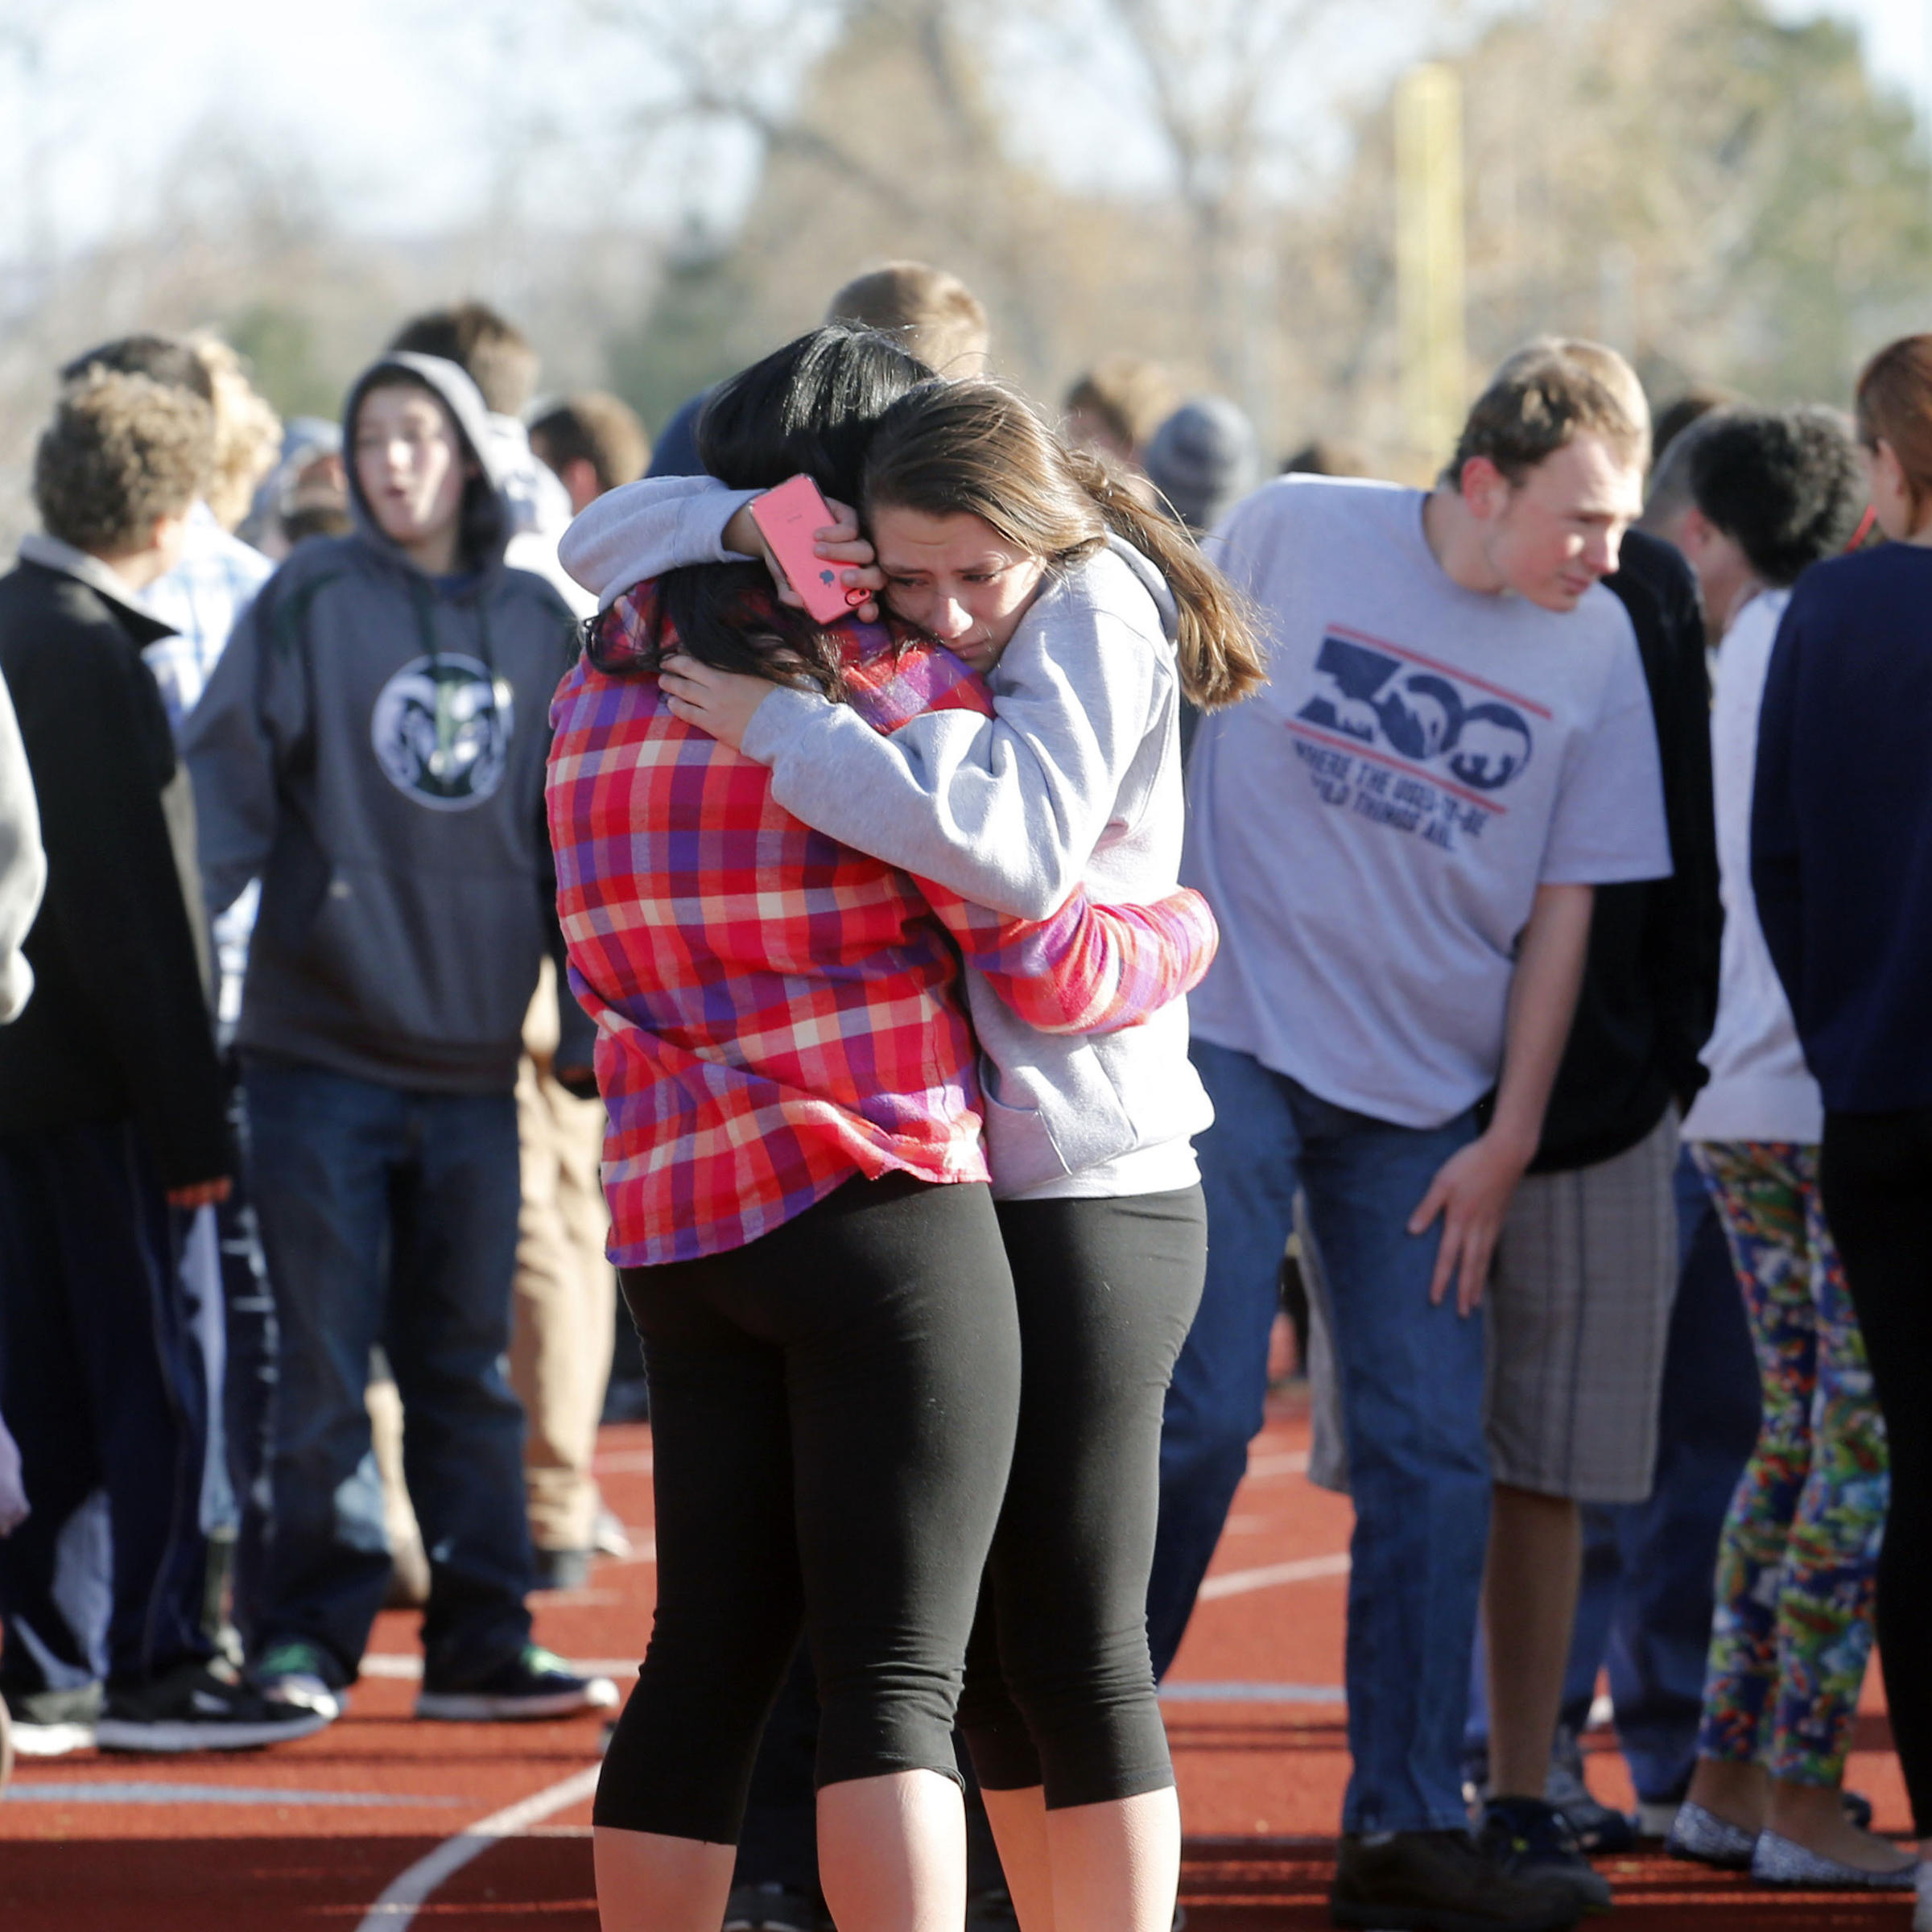 Gunman Dead One Other Student Shot At Arapahoe High: 2 Students Injured, Suspected Shooter Dead At Colo. High